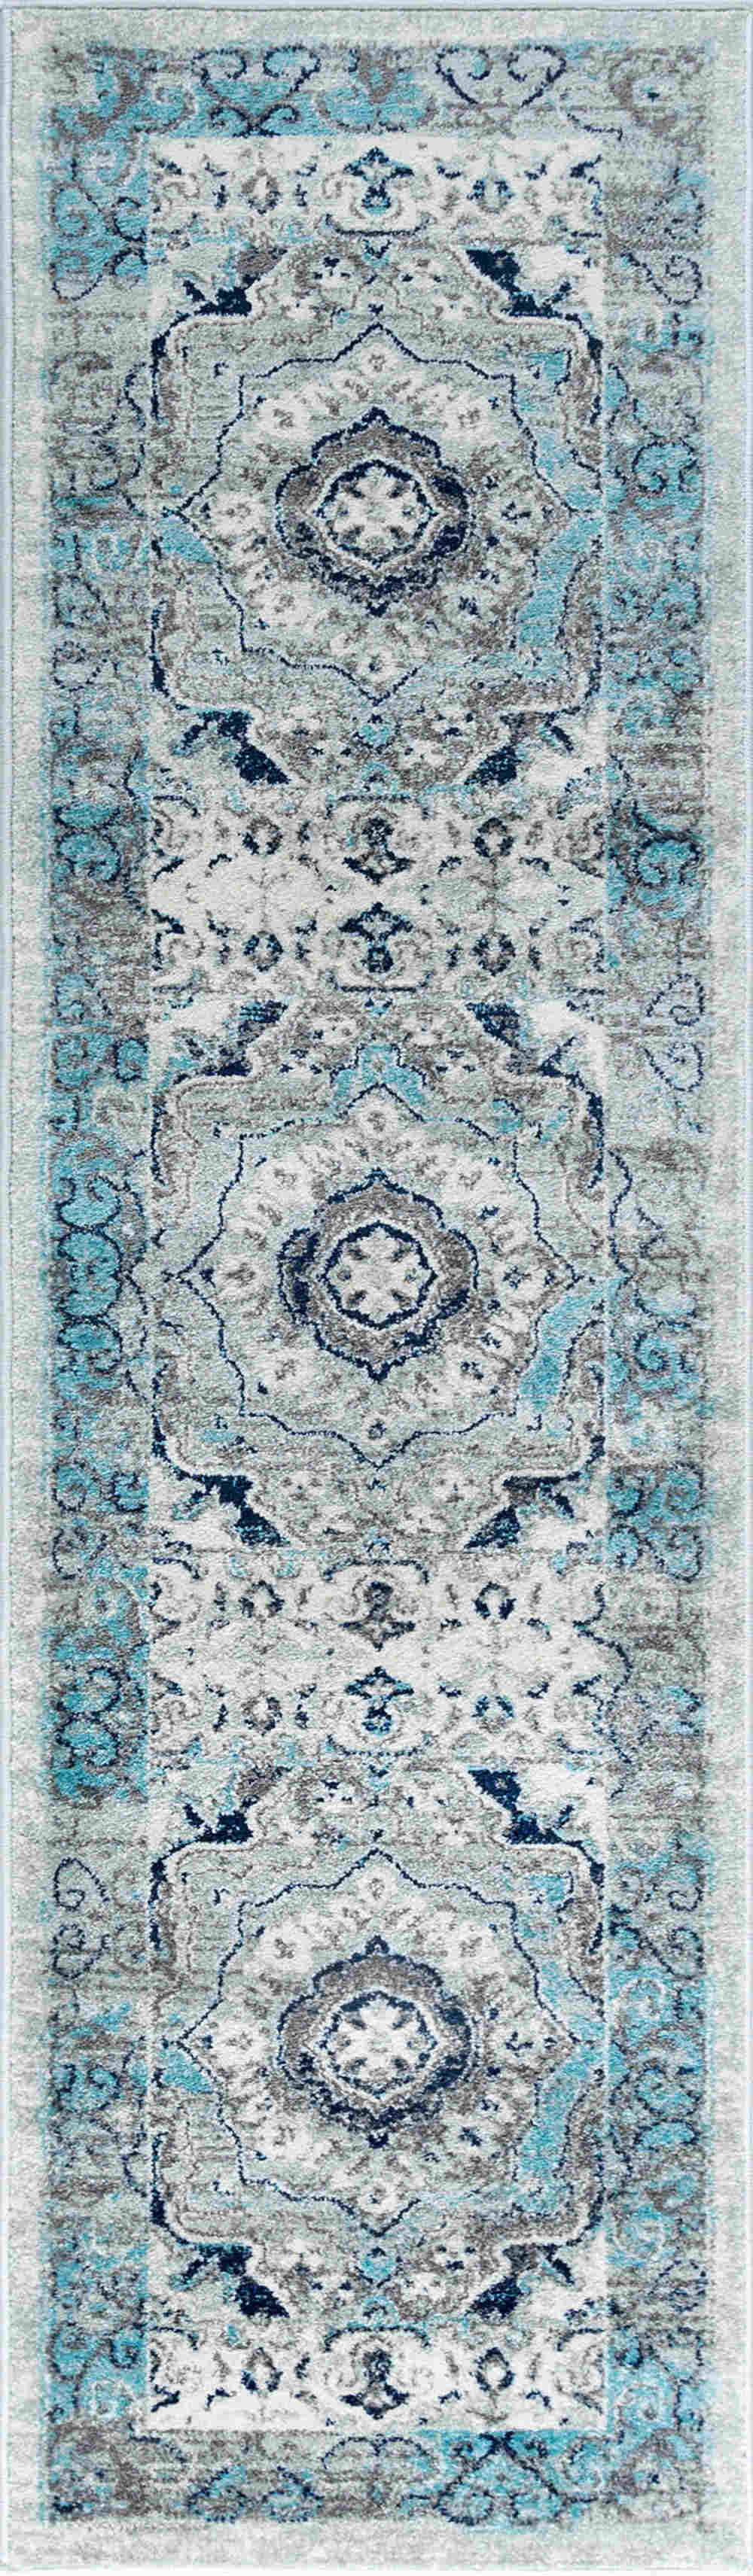 Tayse Jasmine Veriana Transitional Aqua Rug